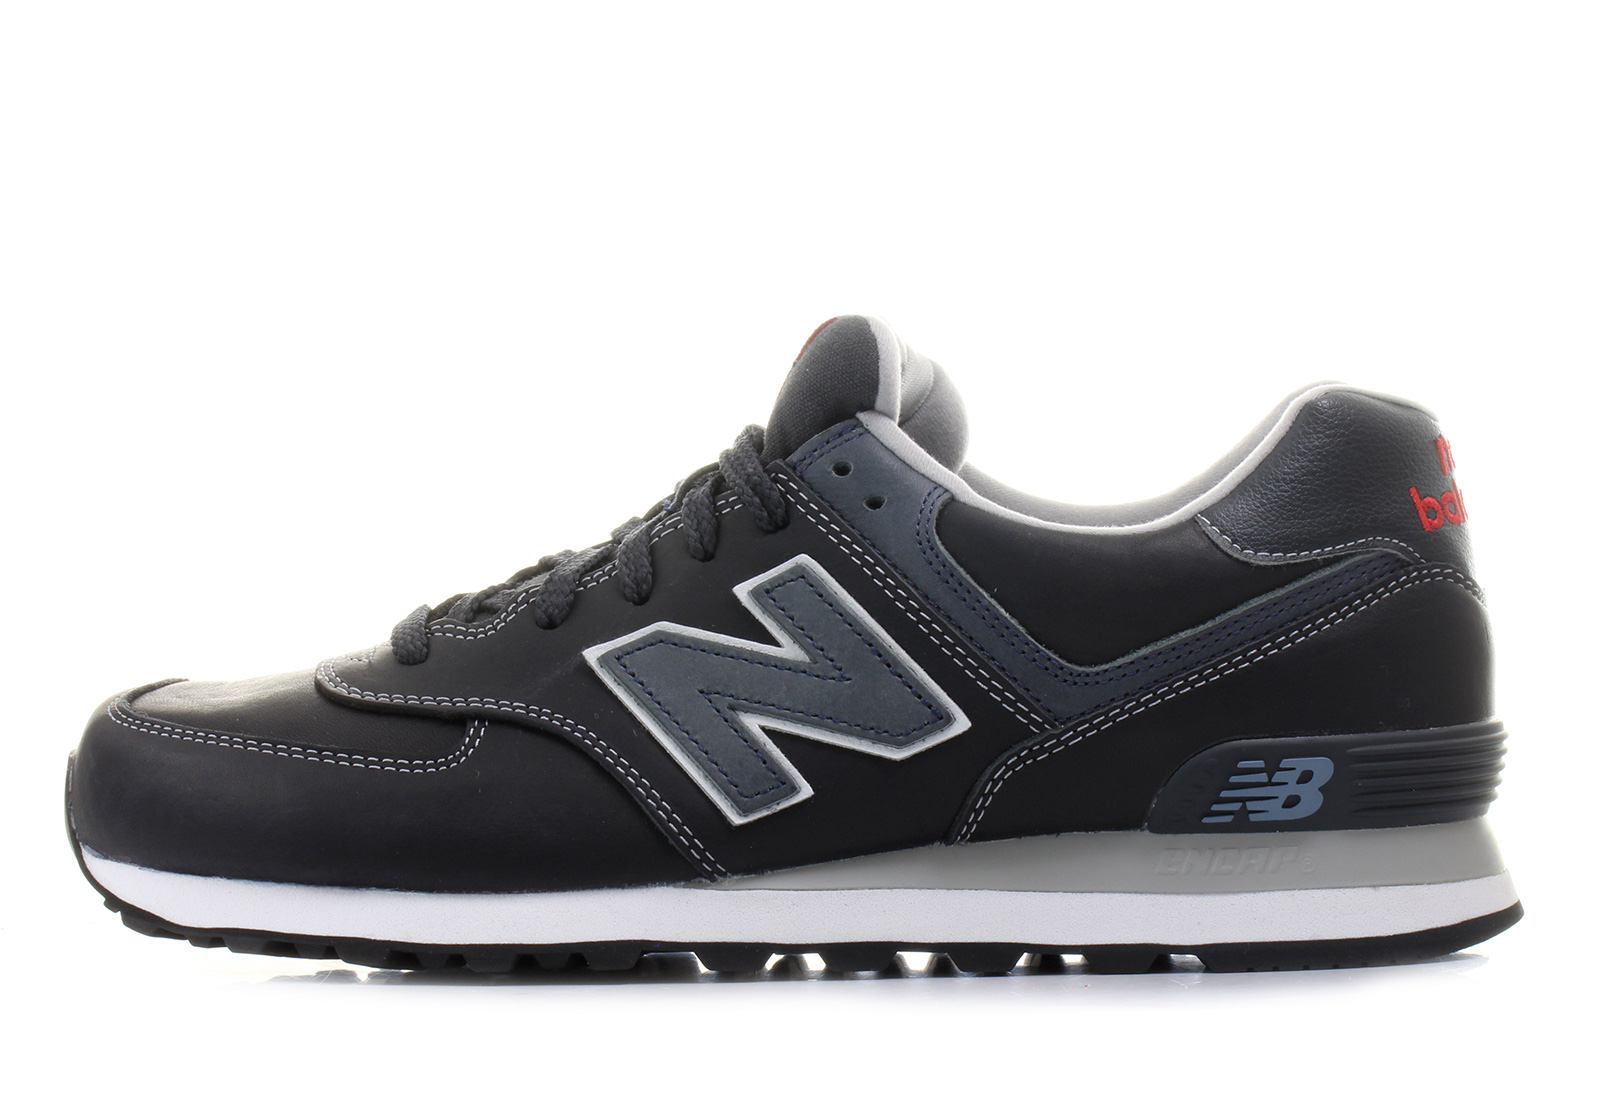 new balance shoes ml574 ml574lln online shop for sneakers shoes and boots. Black Bedroom Furniture Sets. Home Design Ideas